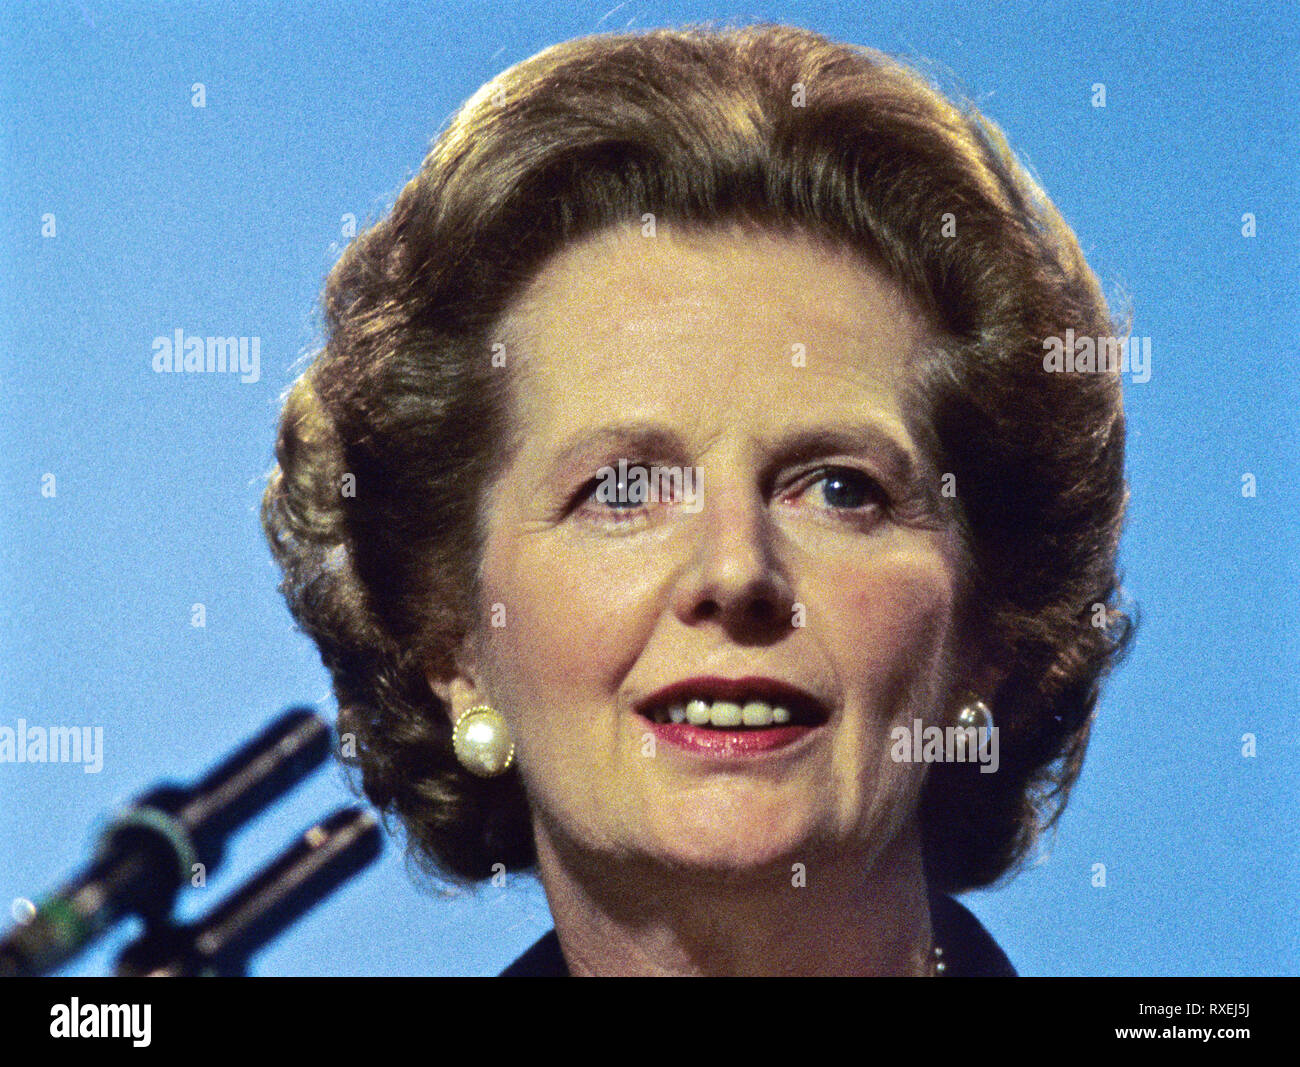 Margaret Thatcher at the height of her powers in the early 1980's from Margaret Thatcher, Britain's first woman prime minister rare set of colour 'expression' images from 1980's. - Stock Image